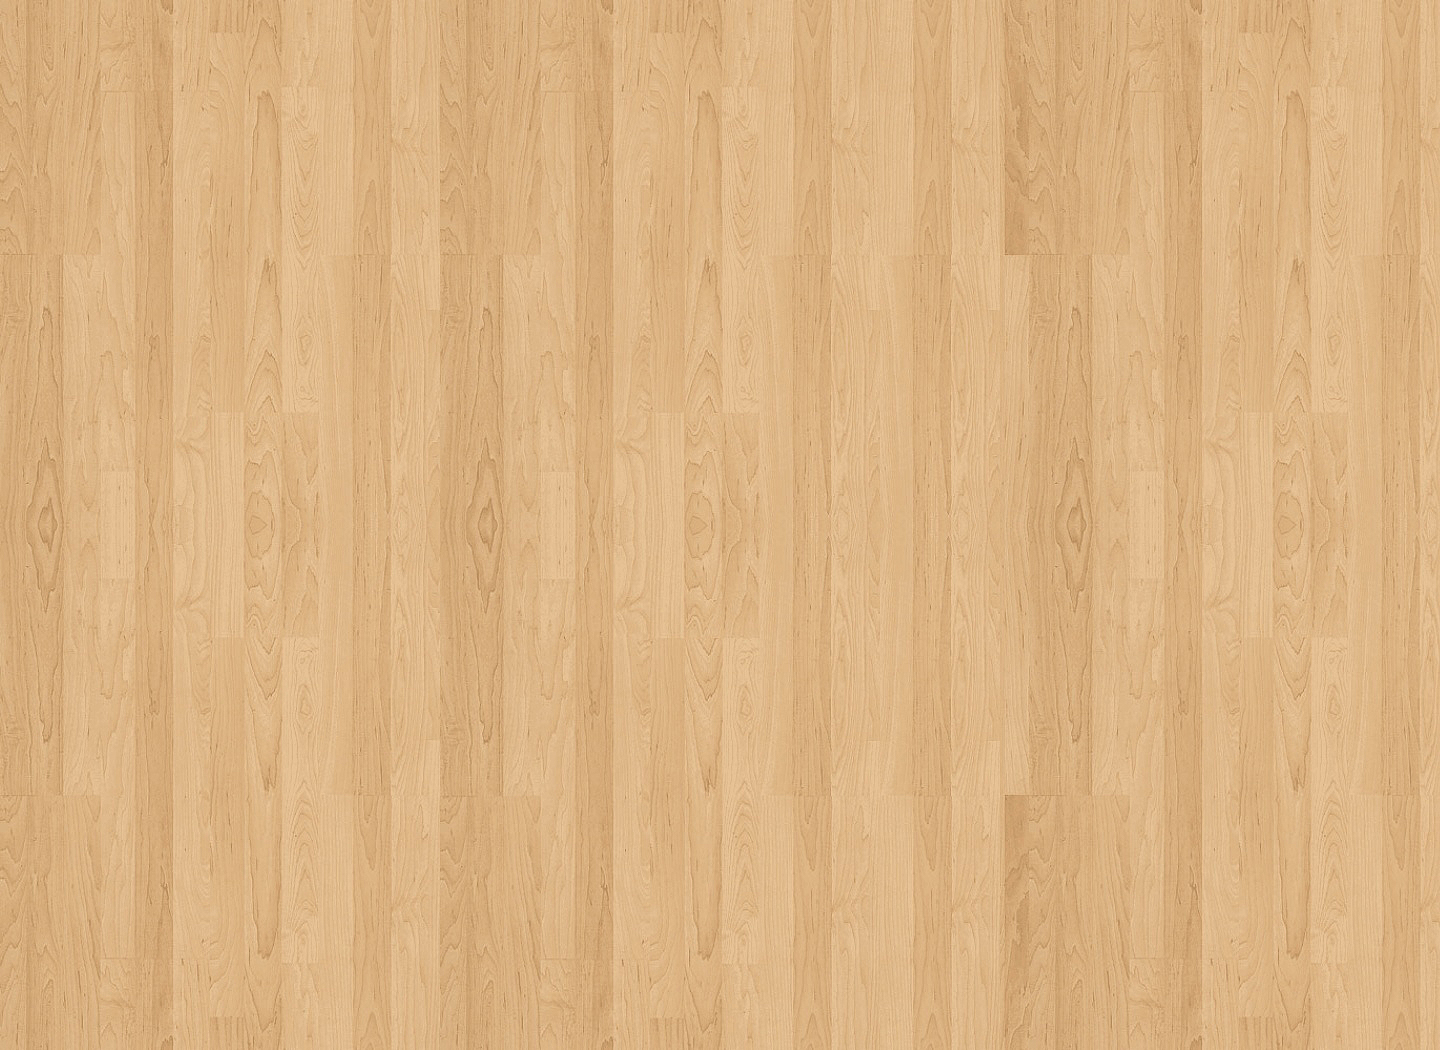 Wood Wallpaper by stenosis 1440x1050